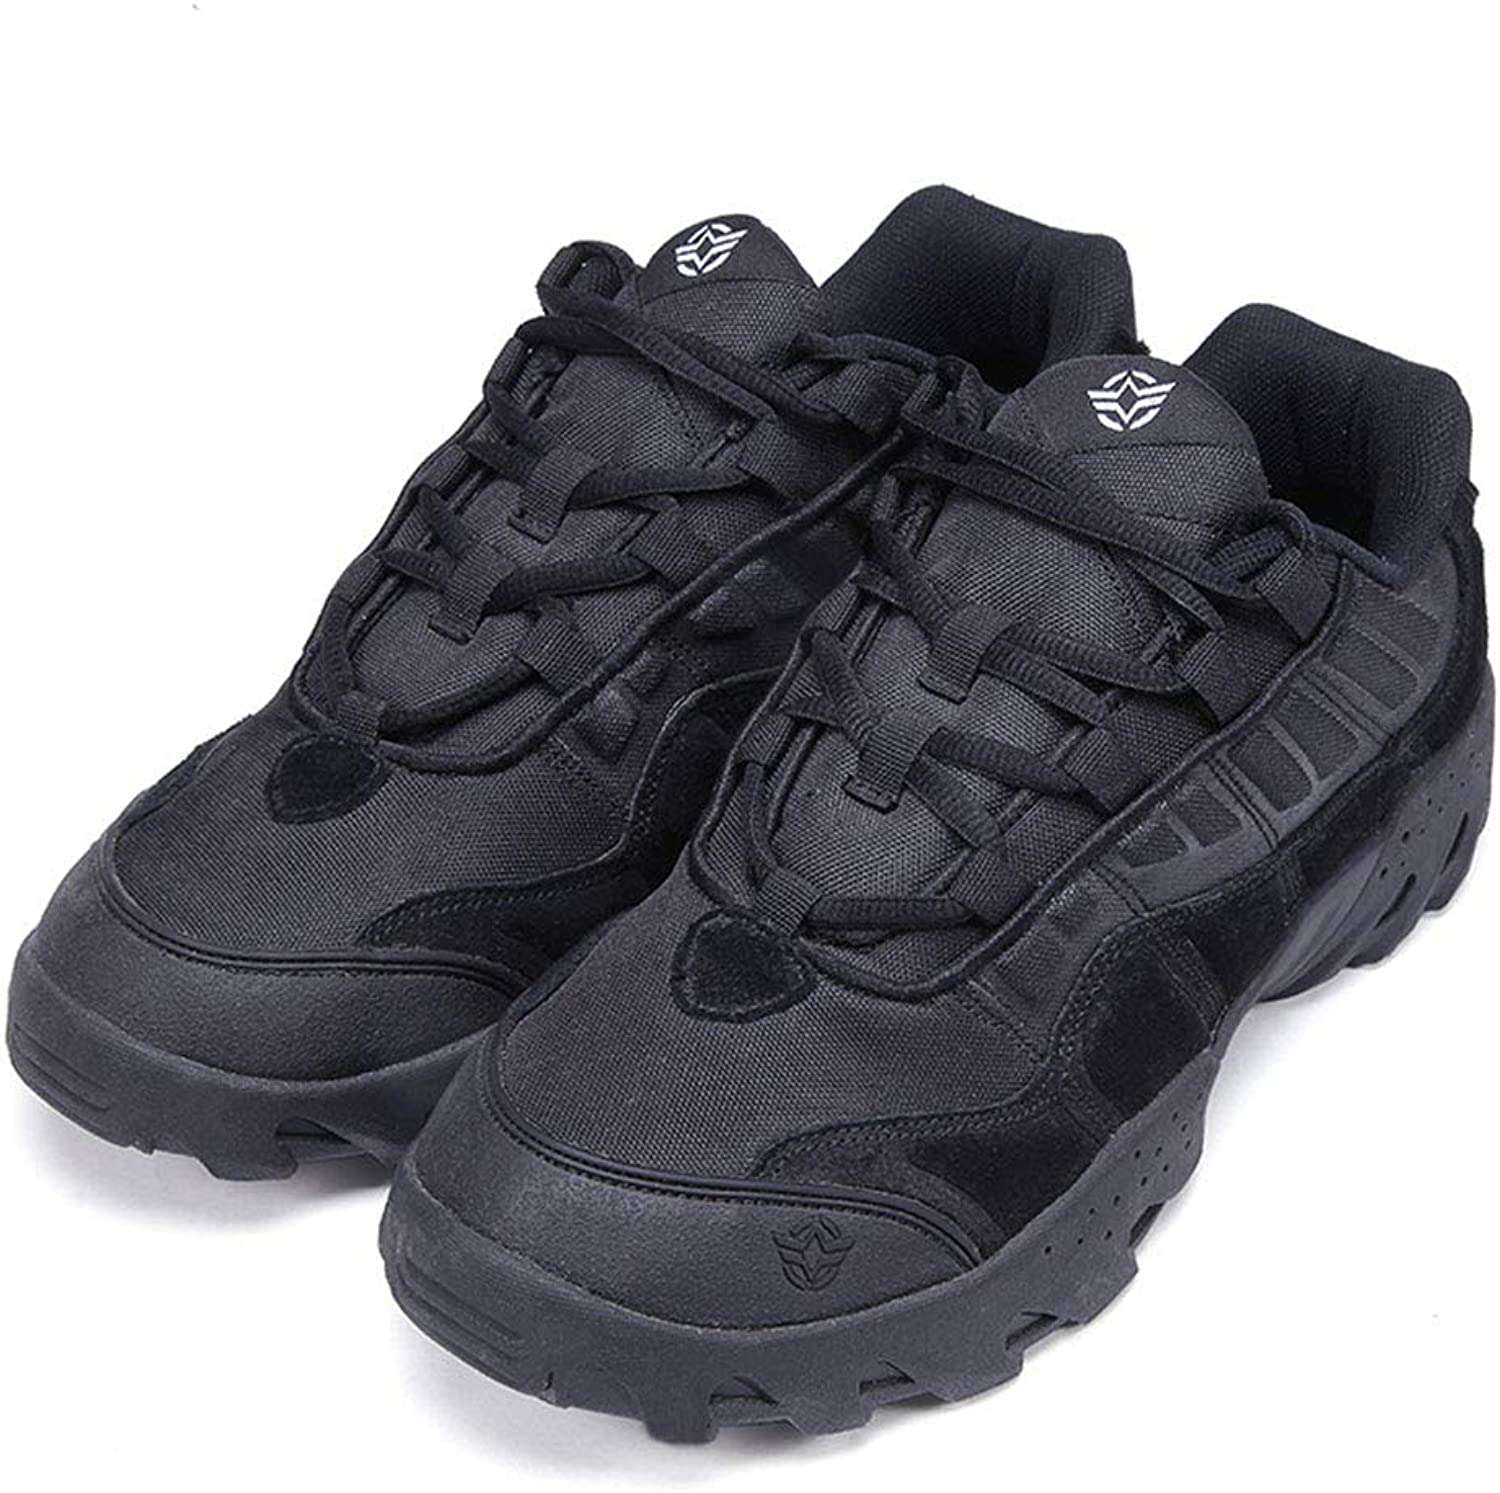 Waterproof Men Low Rise Hiking shoes,Classic,Northwest Territory,Breathable, Soft, Comfortable, Ideal for All Season